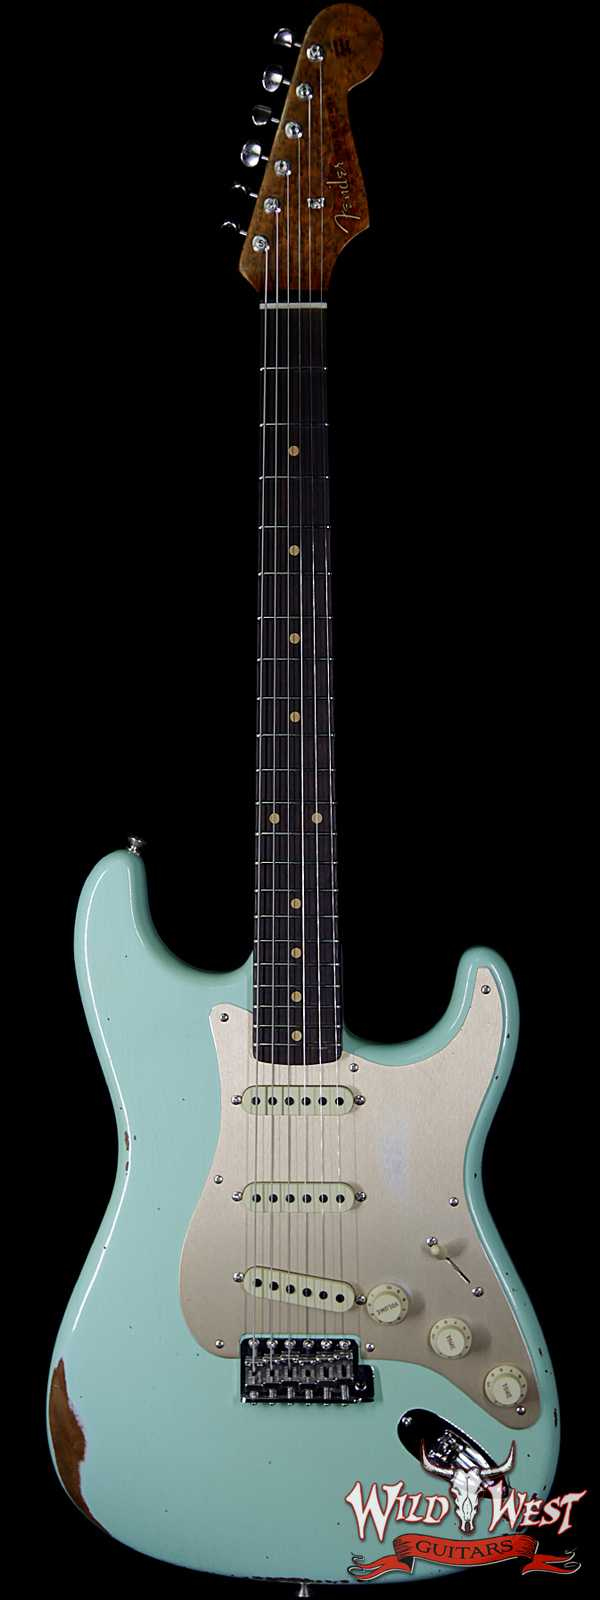 Fender Custom Shop 1960 Roasted Stratocaster Relic Birdseye Neck Rosewood Fingerboard Faded Surf Green